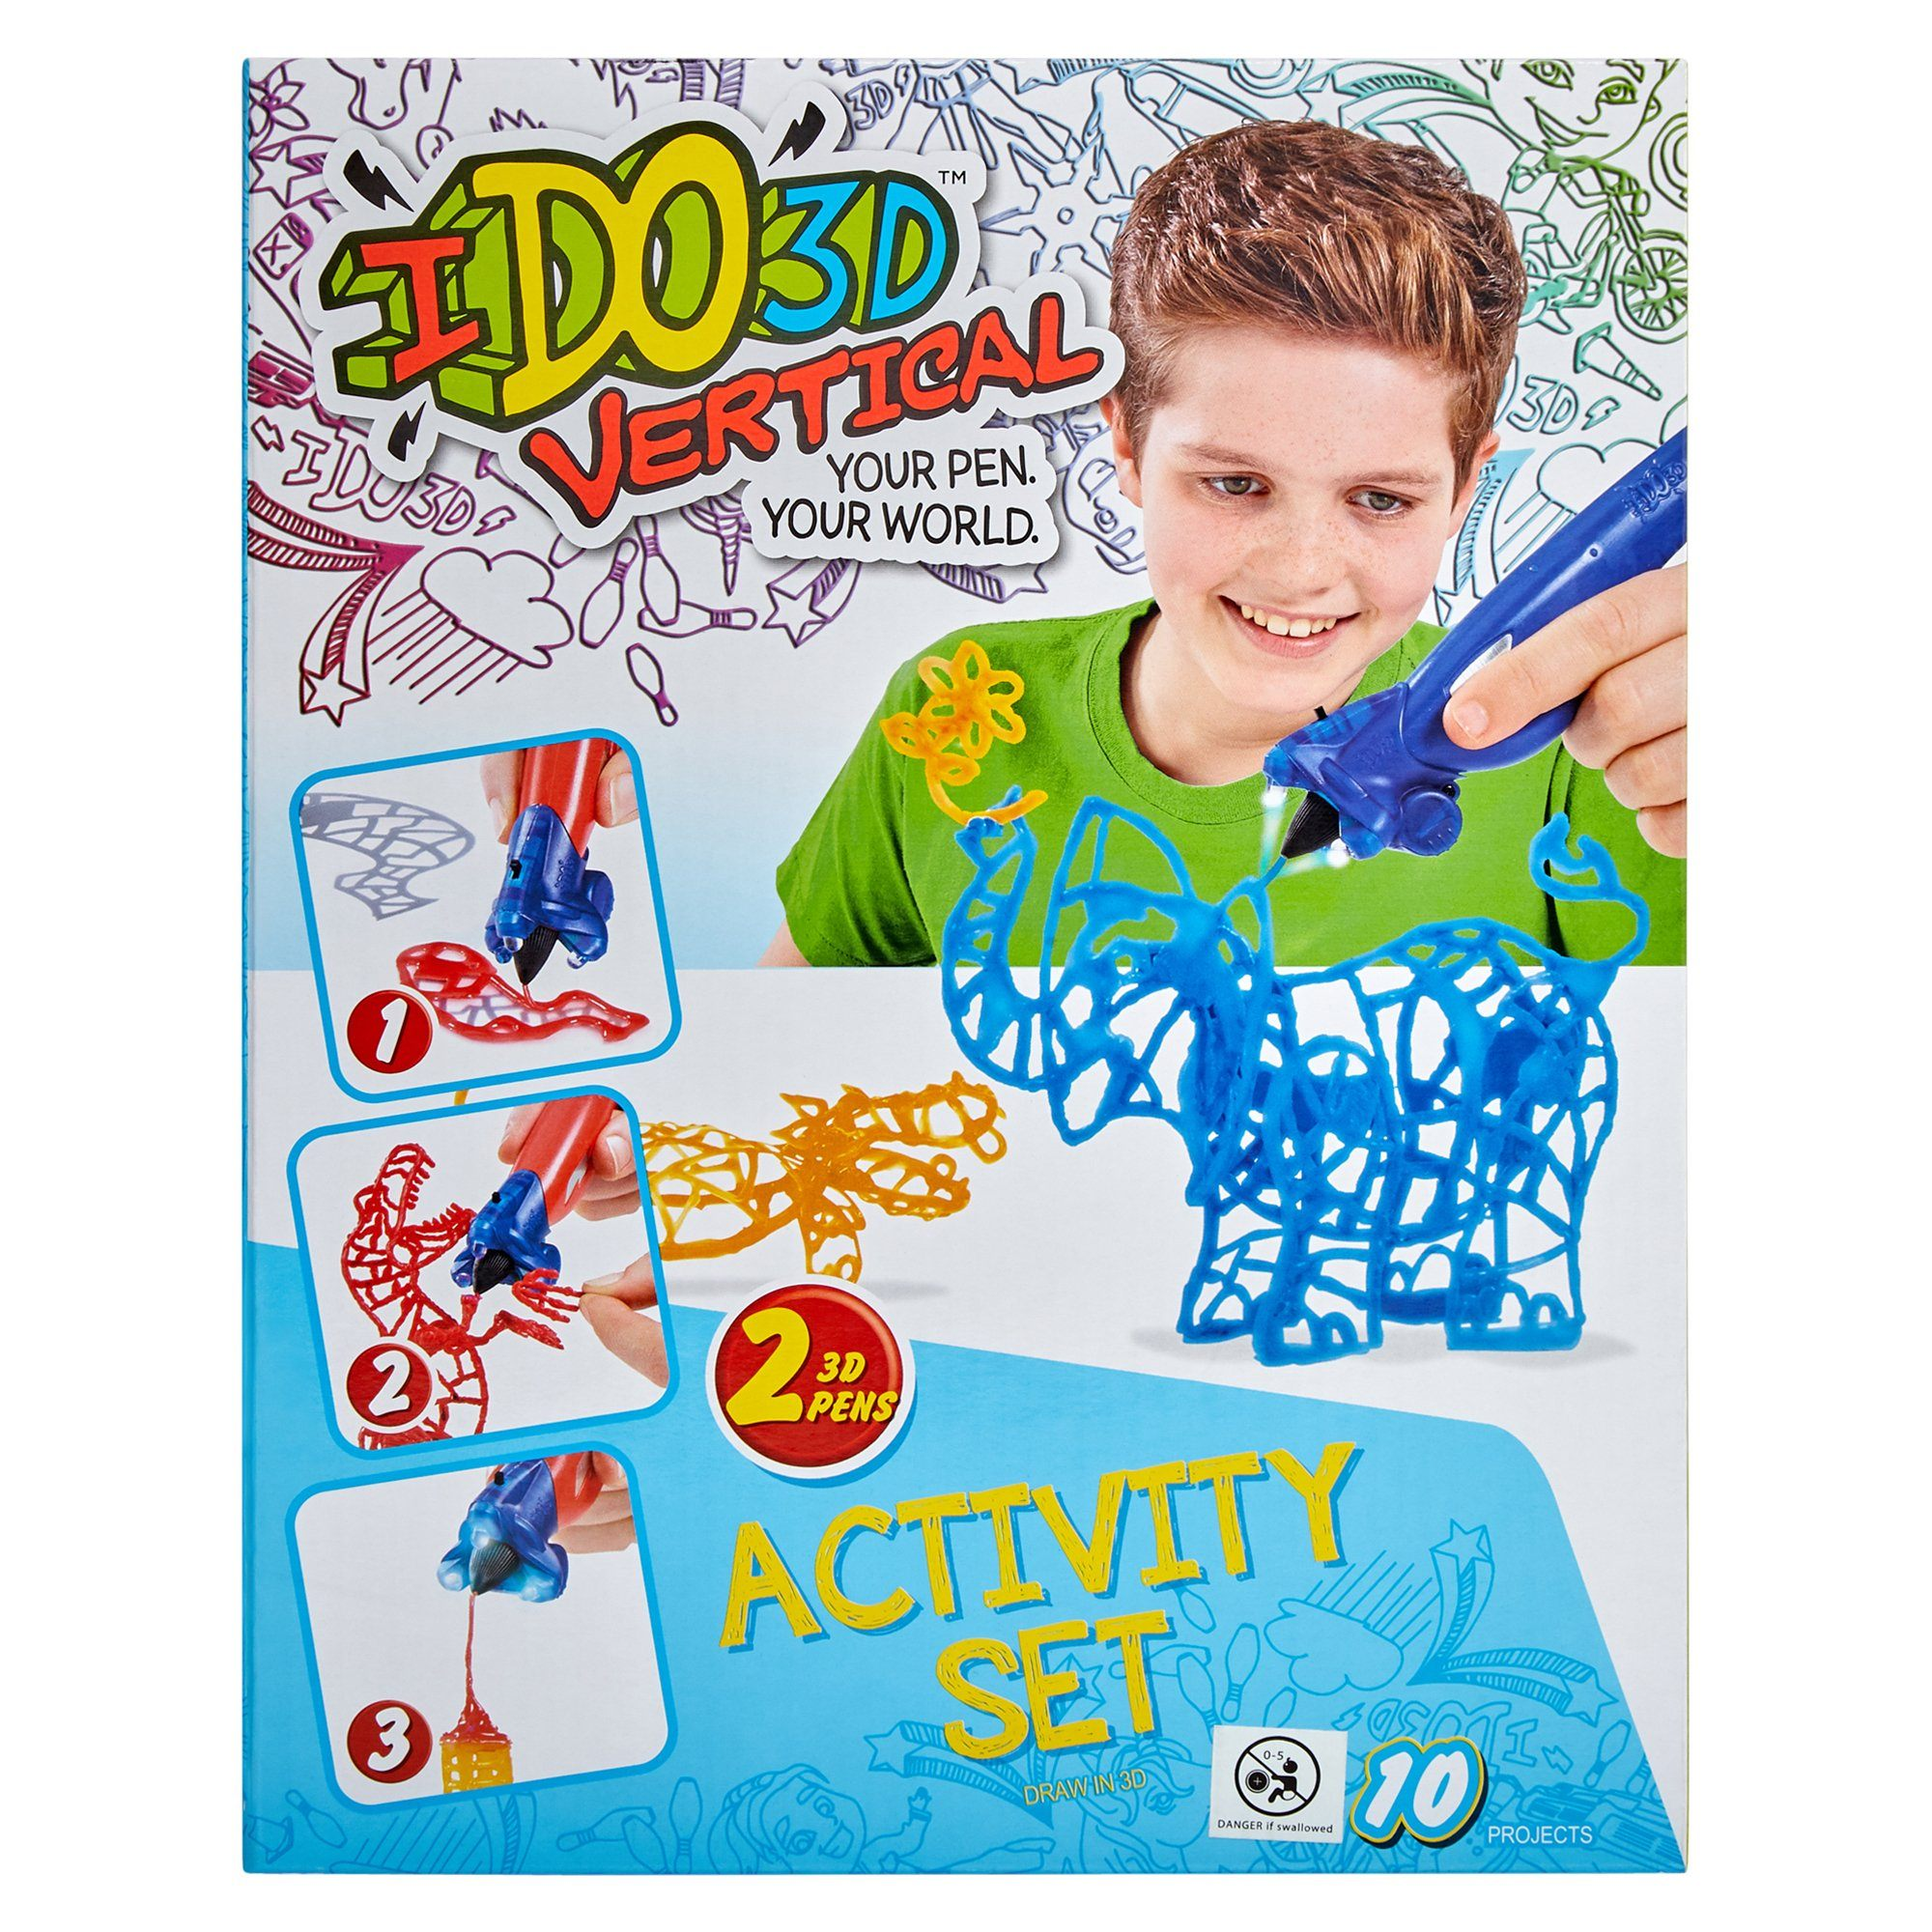 Ido3d Vertical 2 Pen Set - Blue Elephant Toys Ido3d